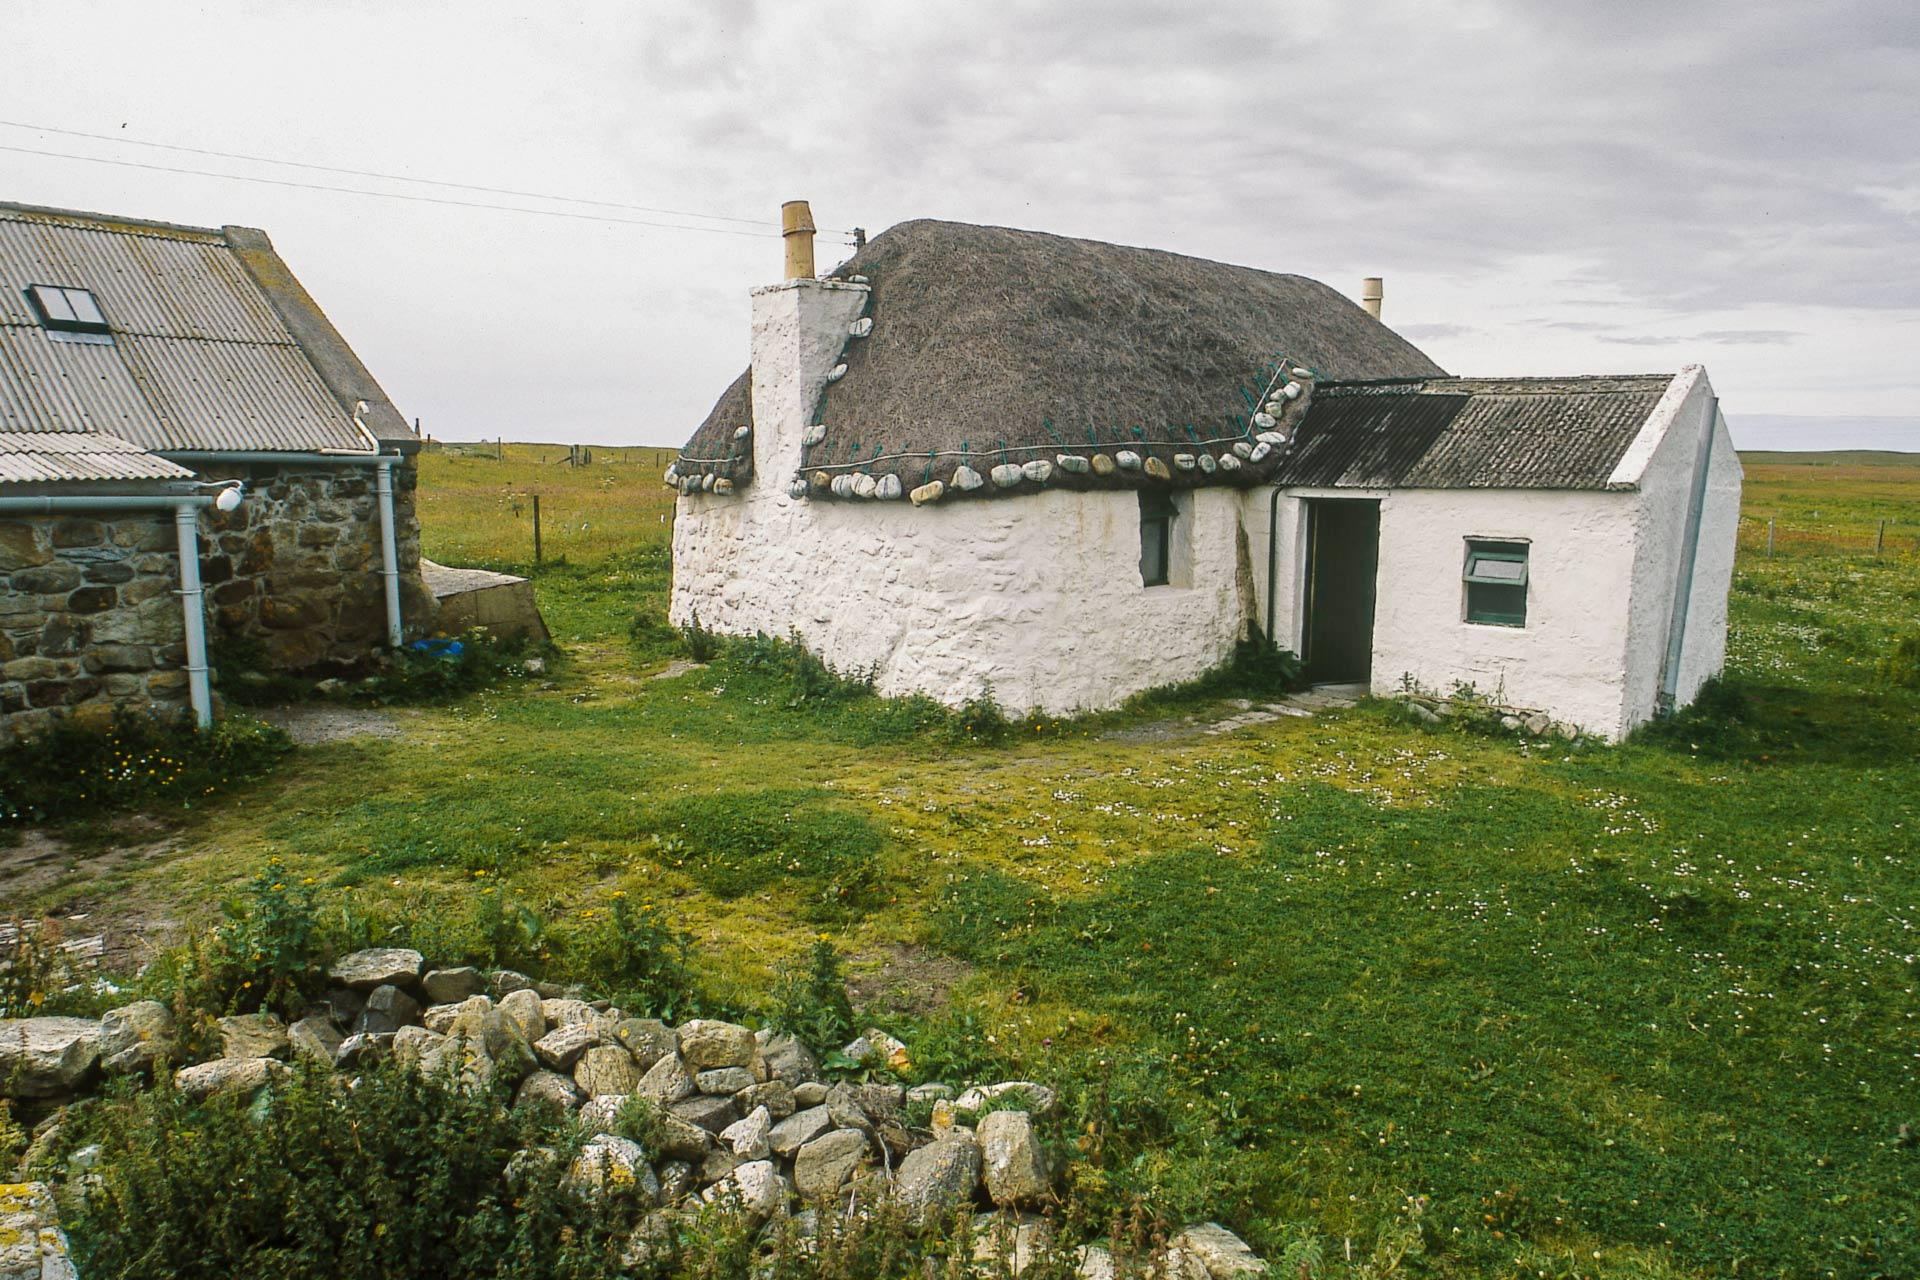 Top Car Inverness >> 9 unusual hostels and bunkhouses in Scotland | VisitScotland